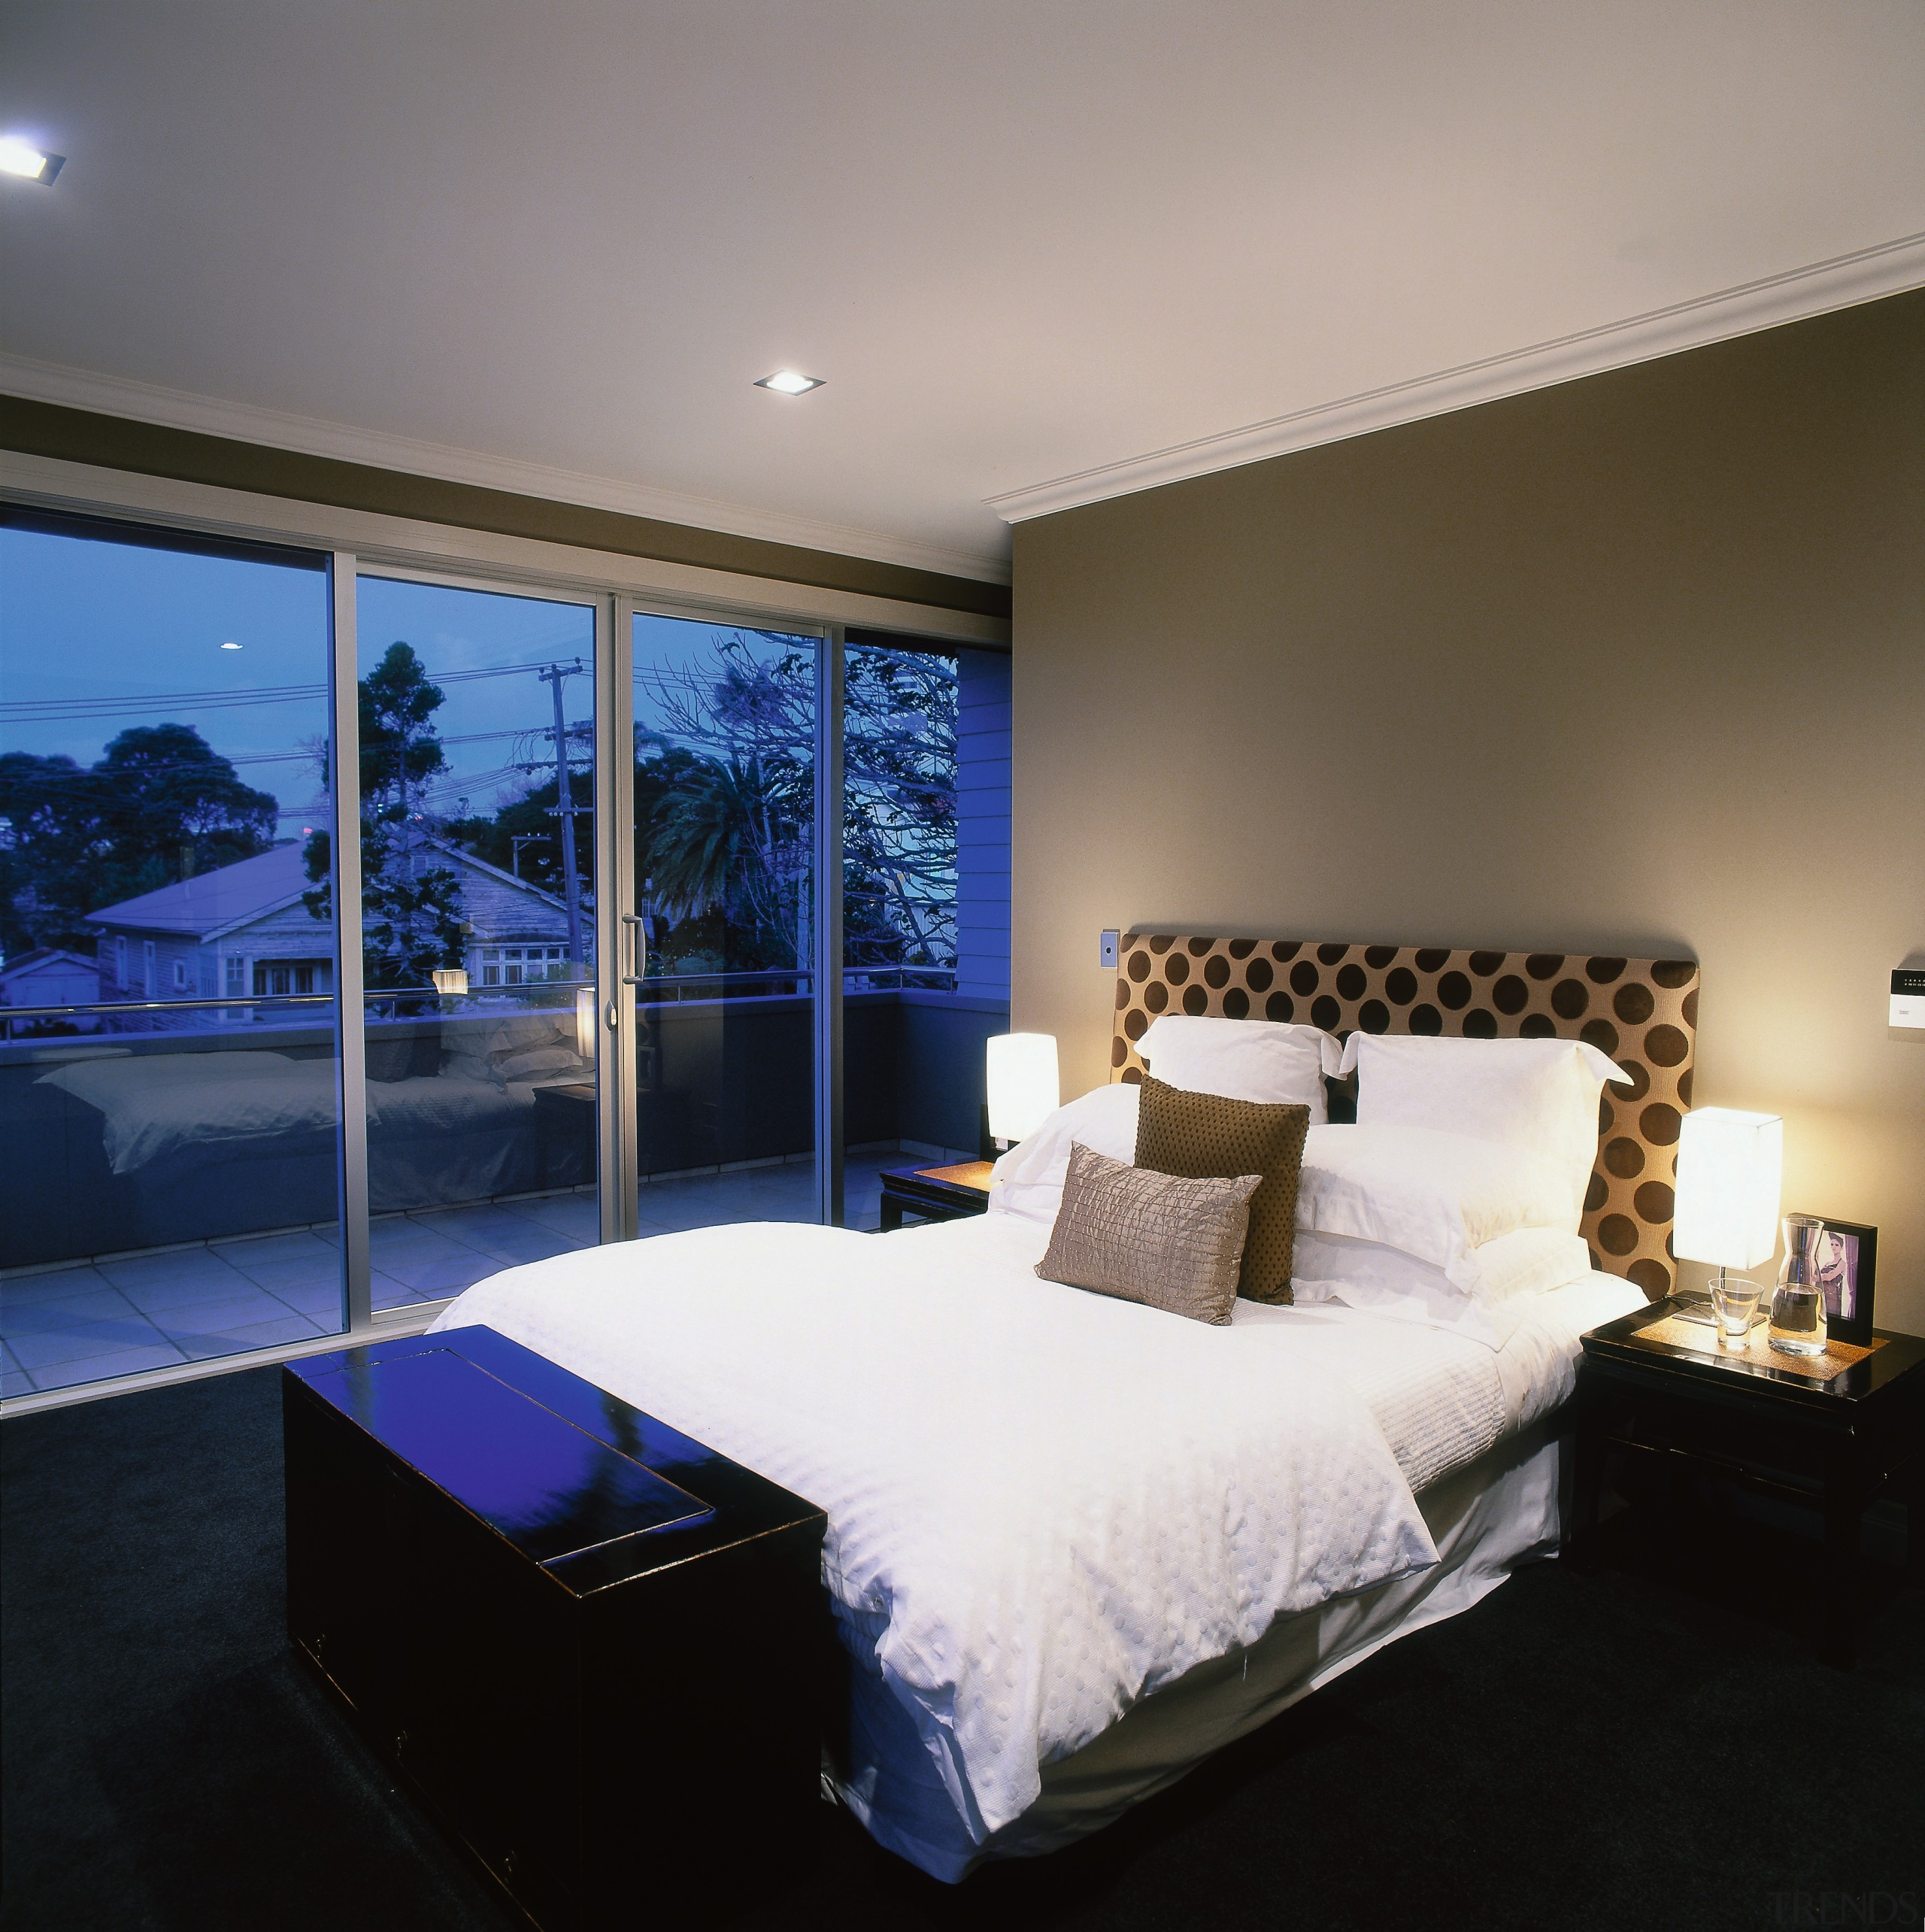 View of the bedroom - View of the architecture, bed frame, bedroom, ceiling, home, interior design, lighting, mattress, property, real estate, room, suite, wall, gray, black